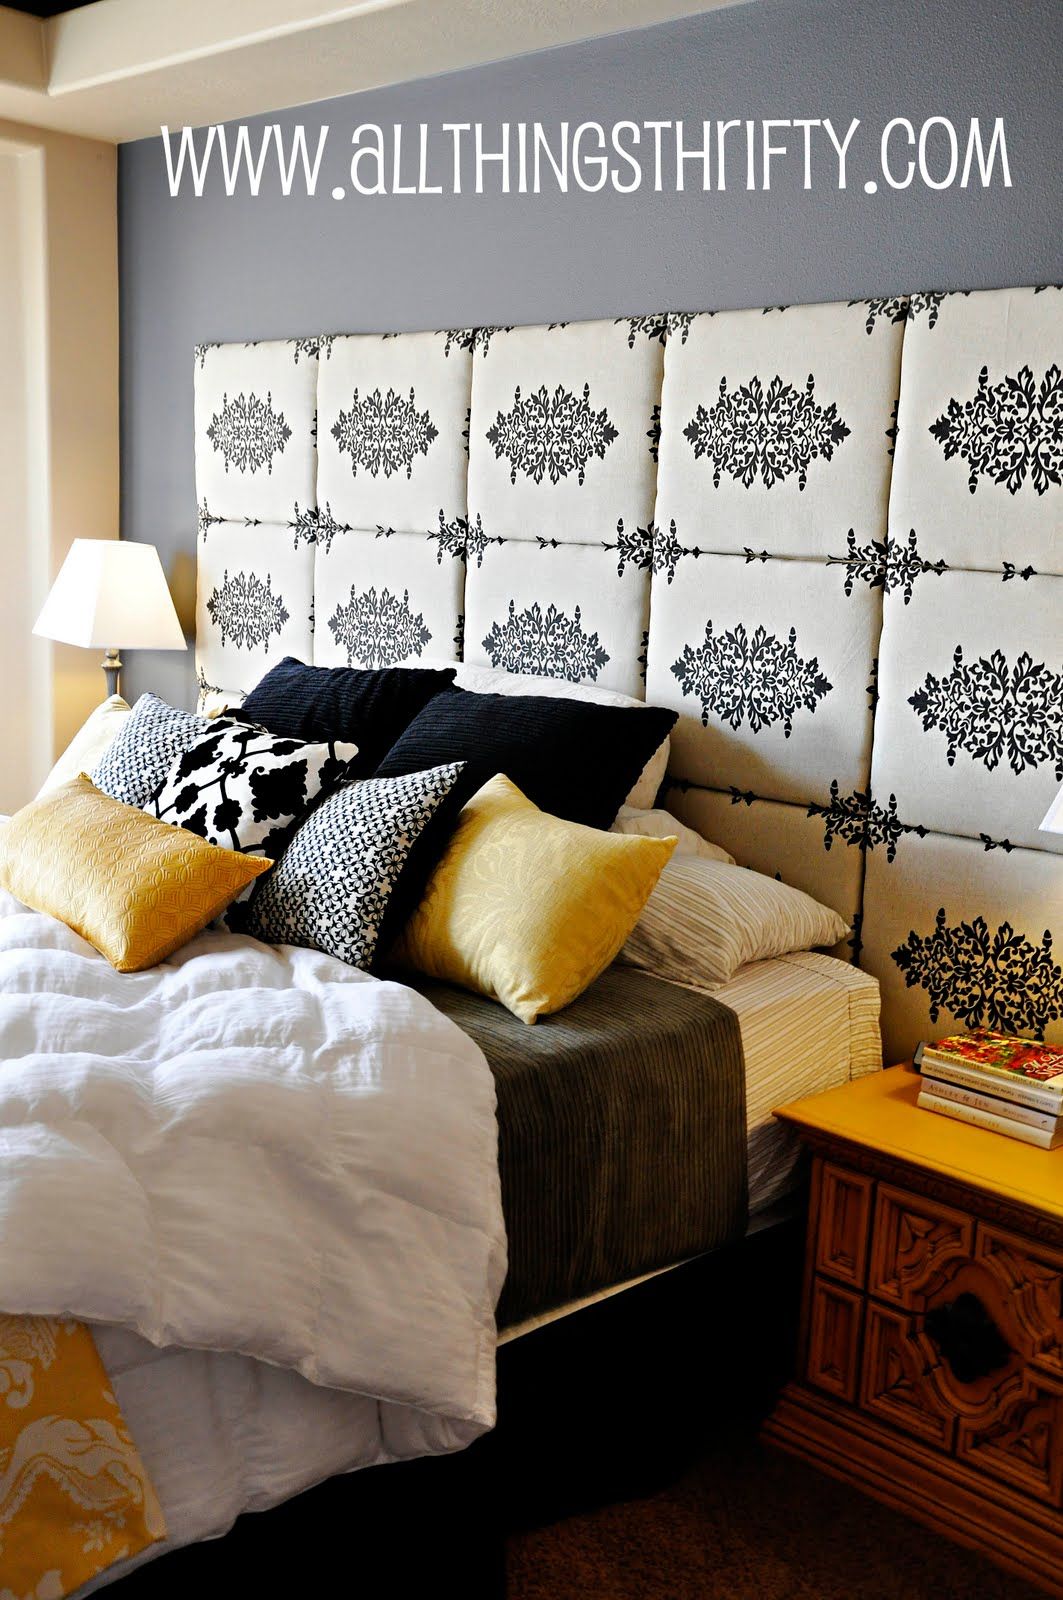 make your own headboard for less than 80 00 all things thrifty